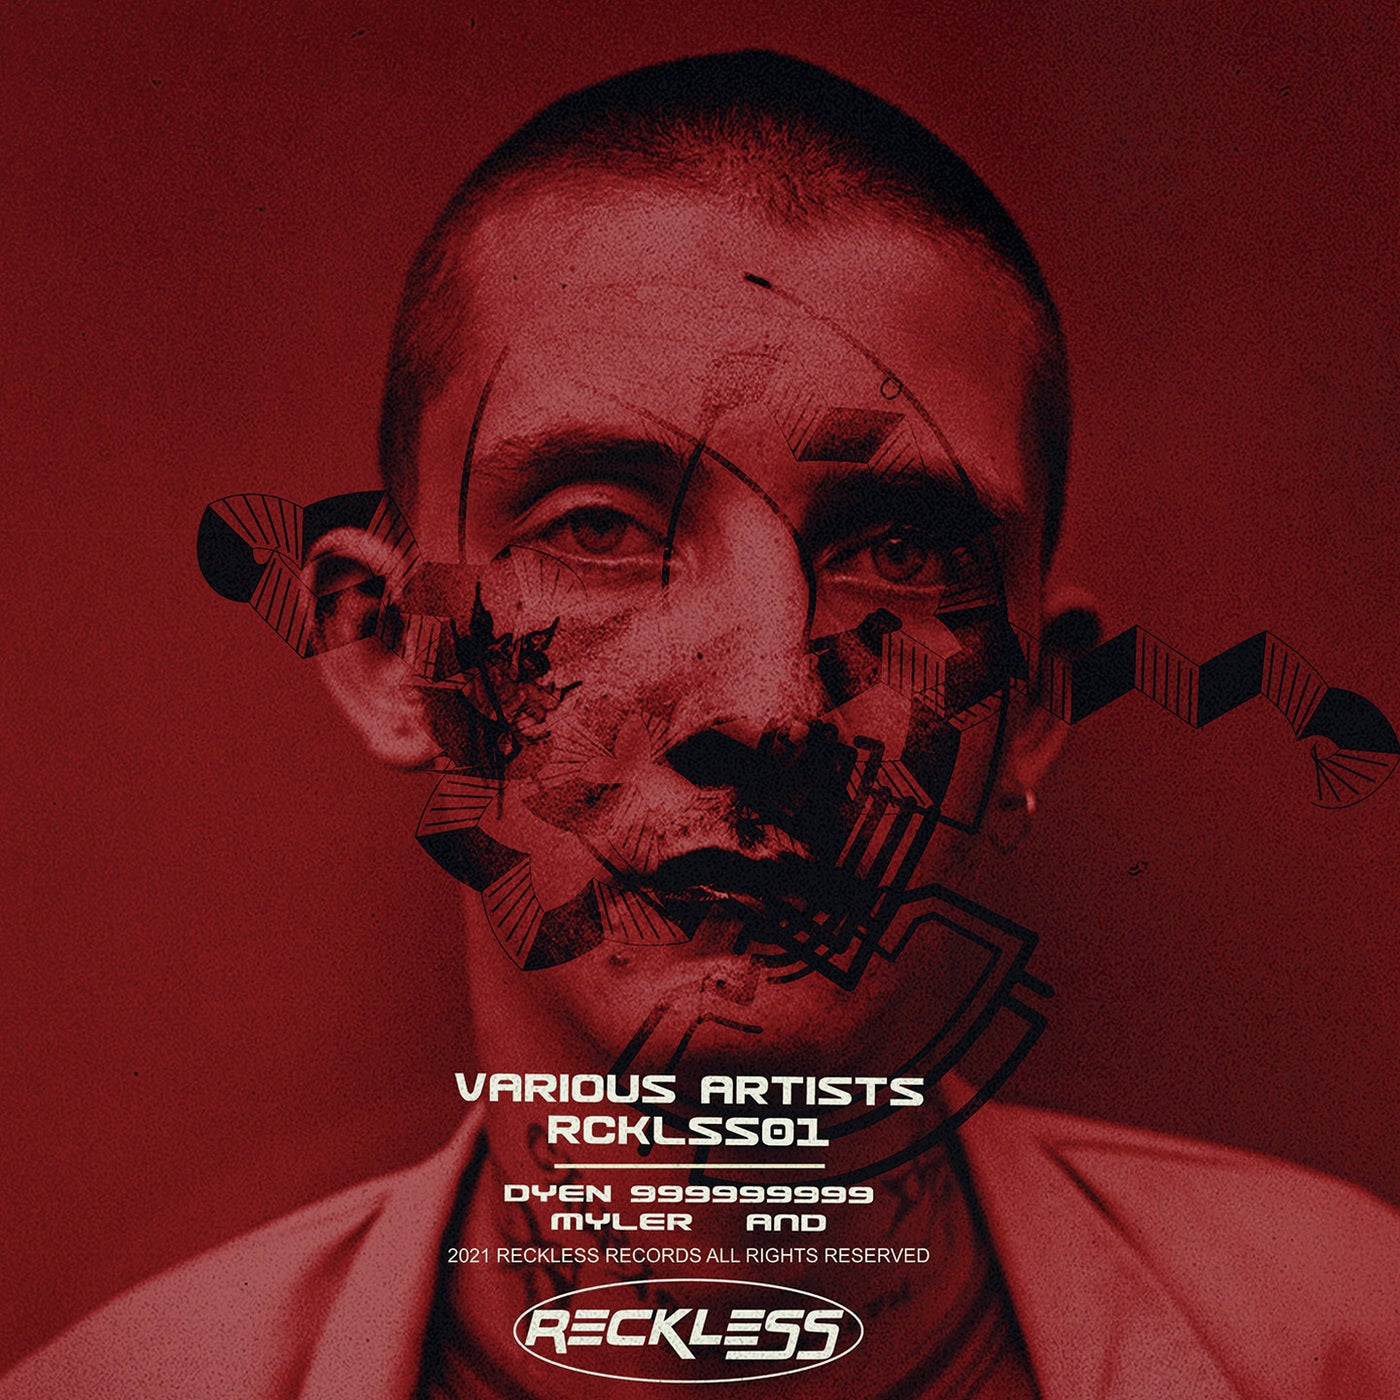 Download RCKLSS01 on Electrobuzz